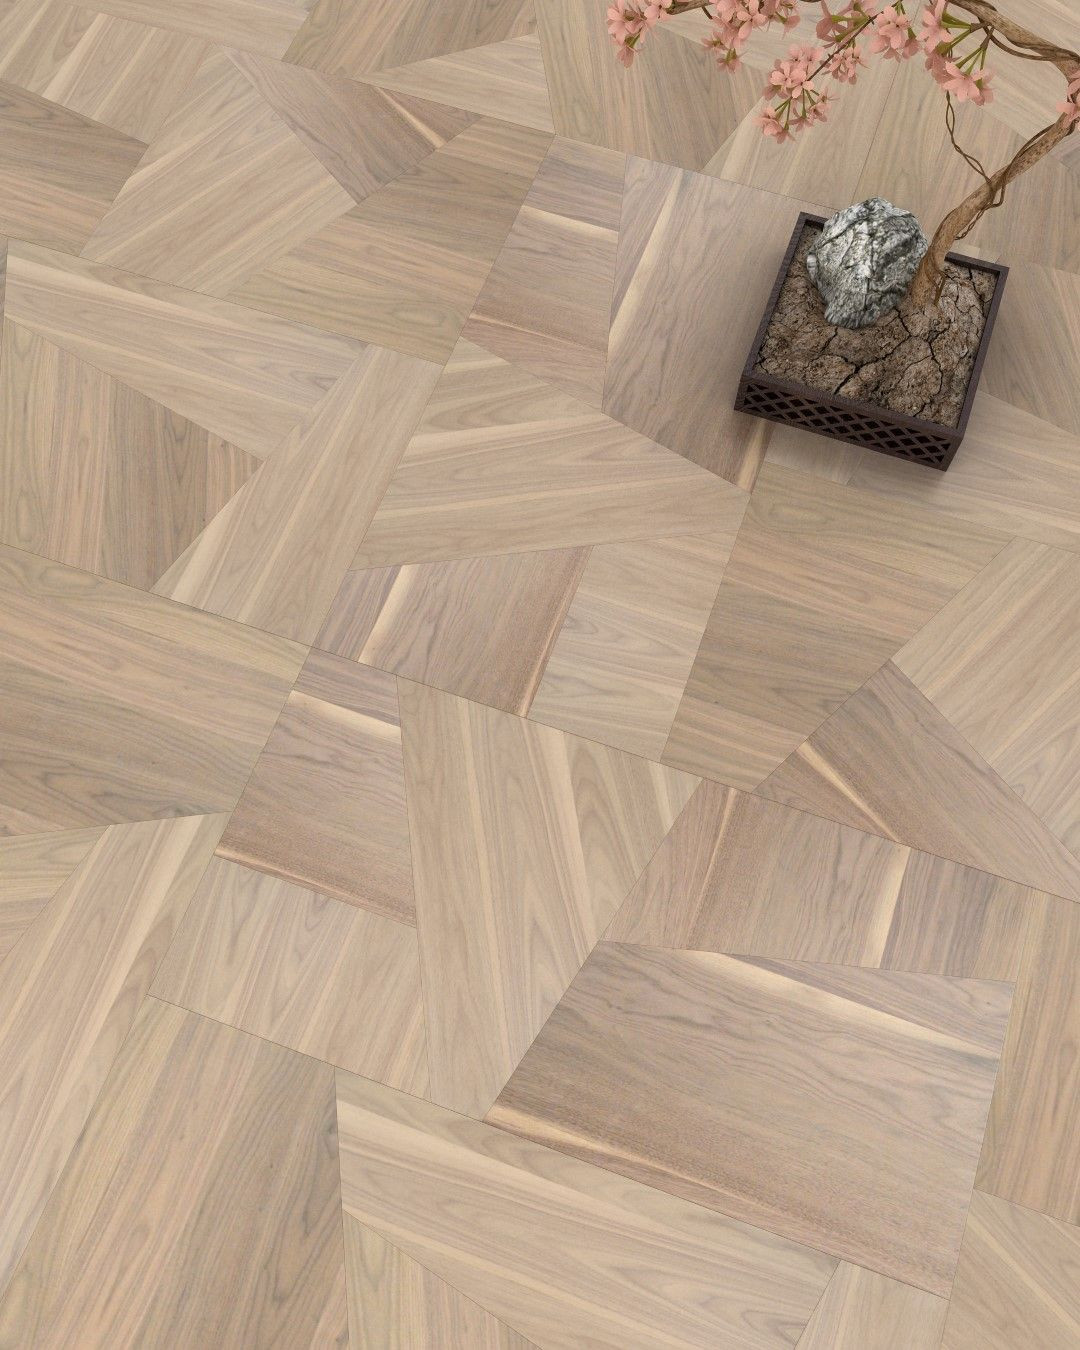 hardwood flooring made in usa of trio parquet stp w design trencadis walnut american sbiancato throughout trio parquet stp w design trencadis walnut american sbiancato 16x1160x580 made in spain